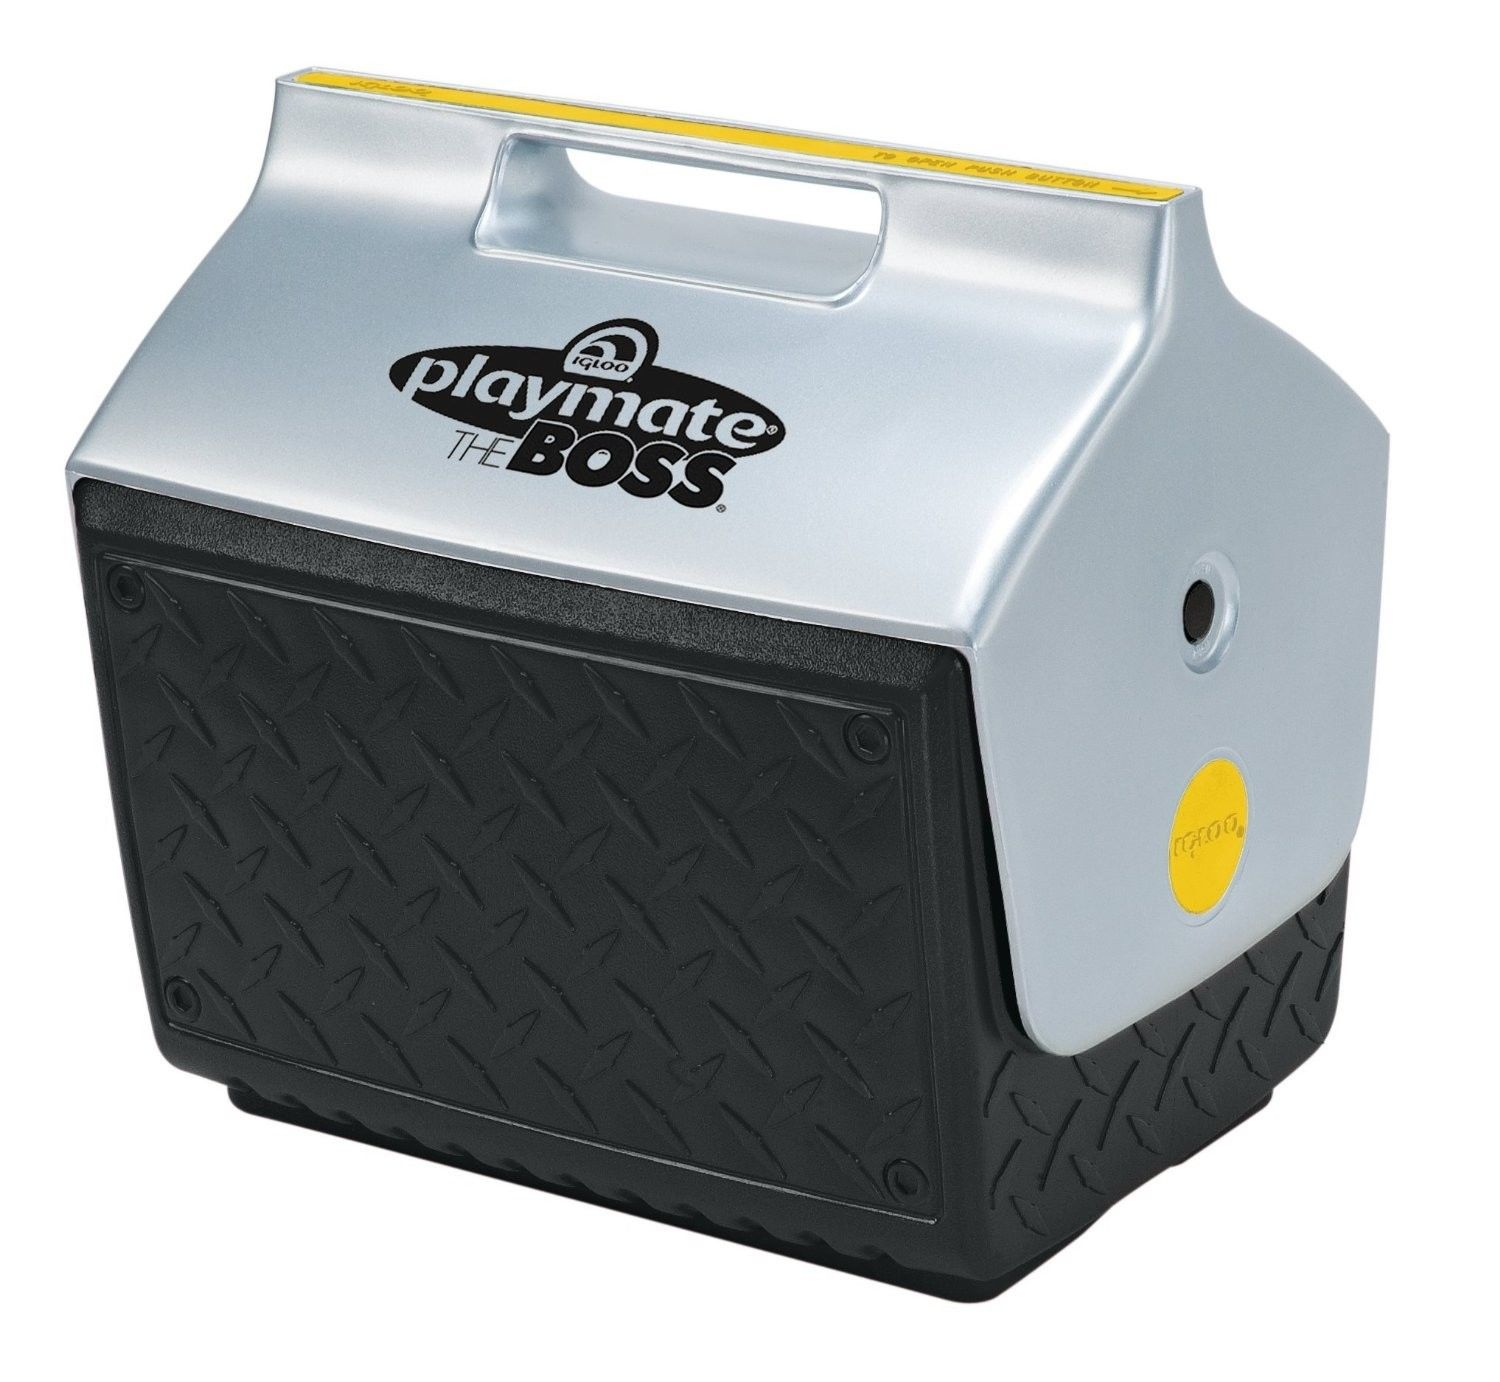 Igloo 14.8 Quart Playmate Cooler with Industria... - $30.66